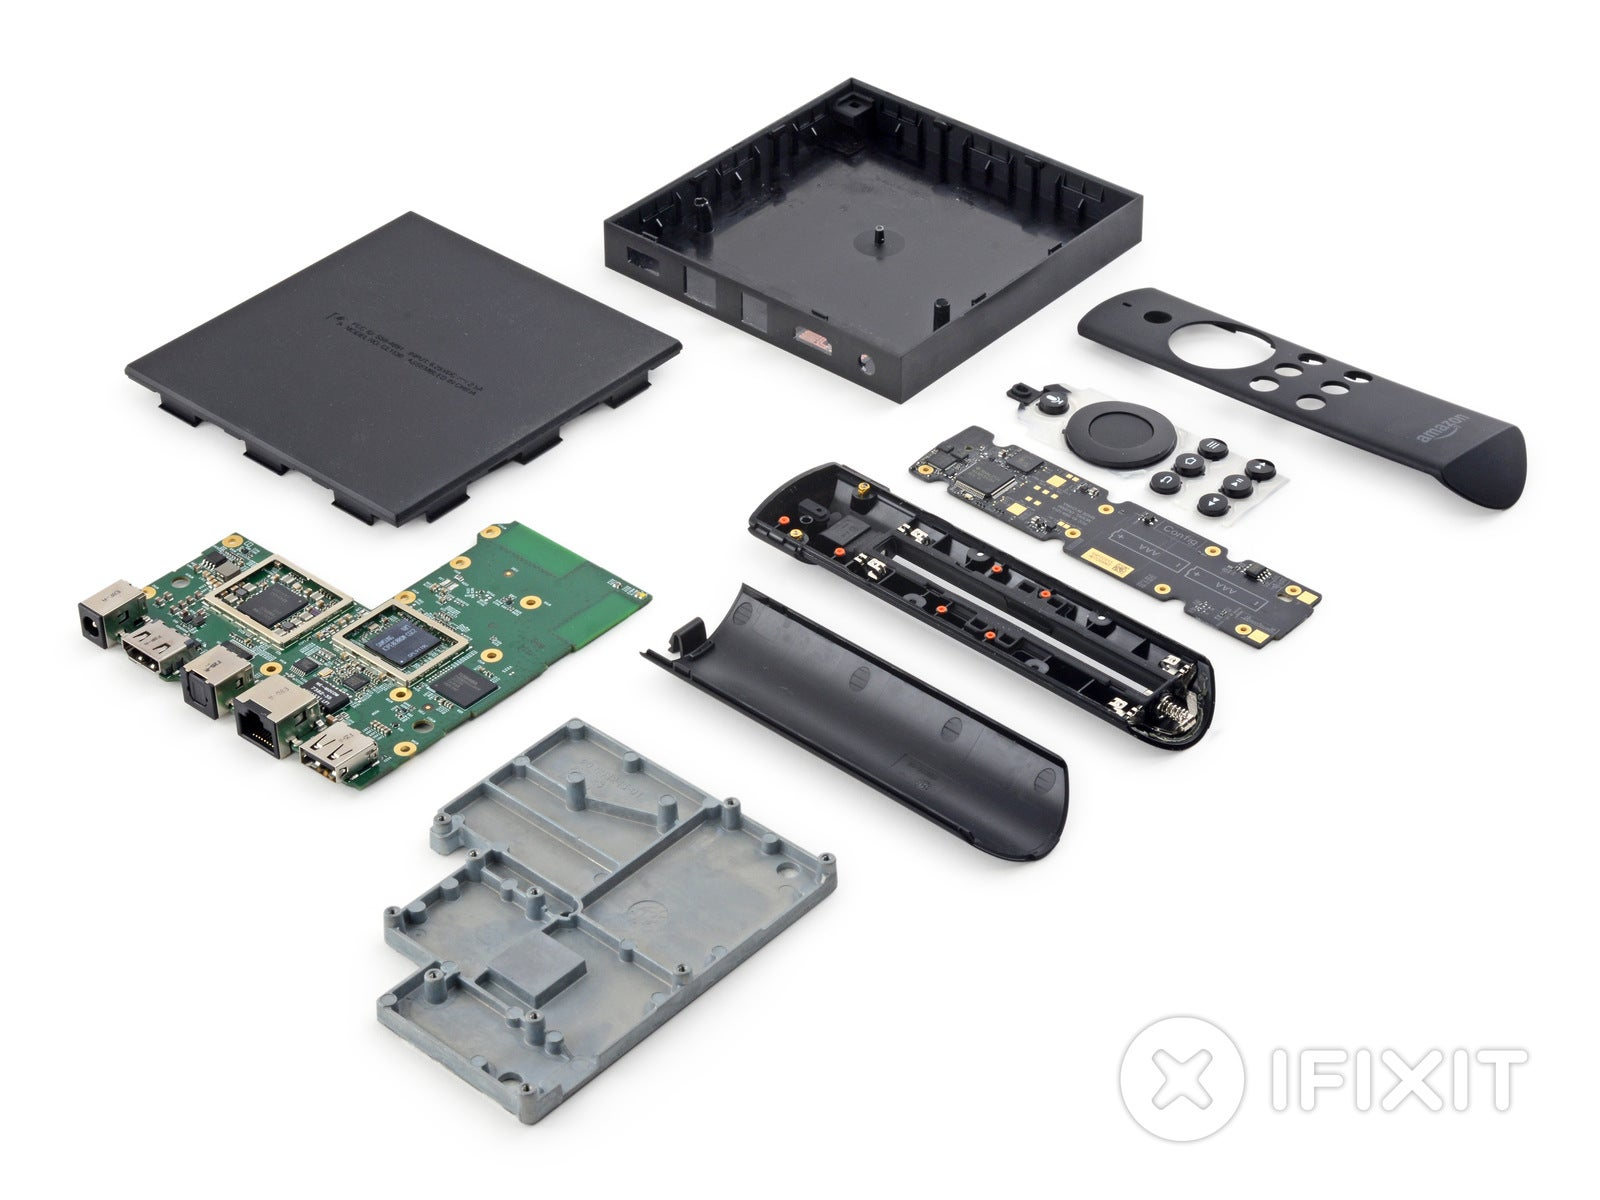 What's Inside the Amazon Fire TV